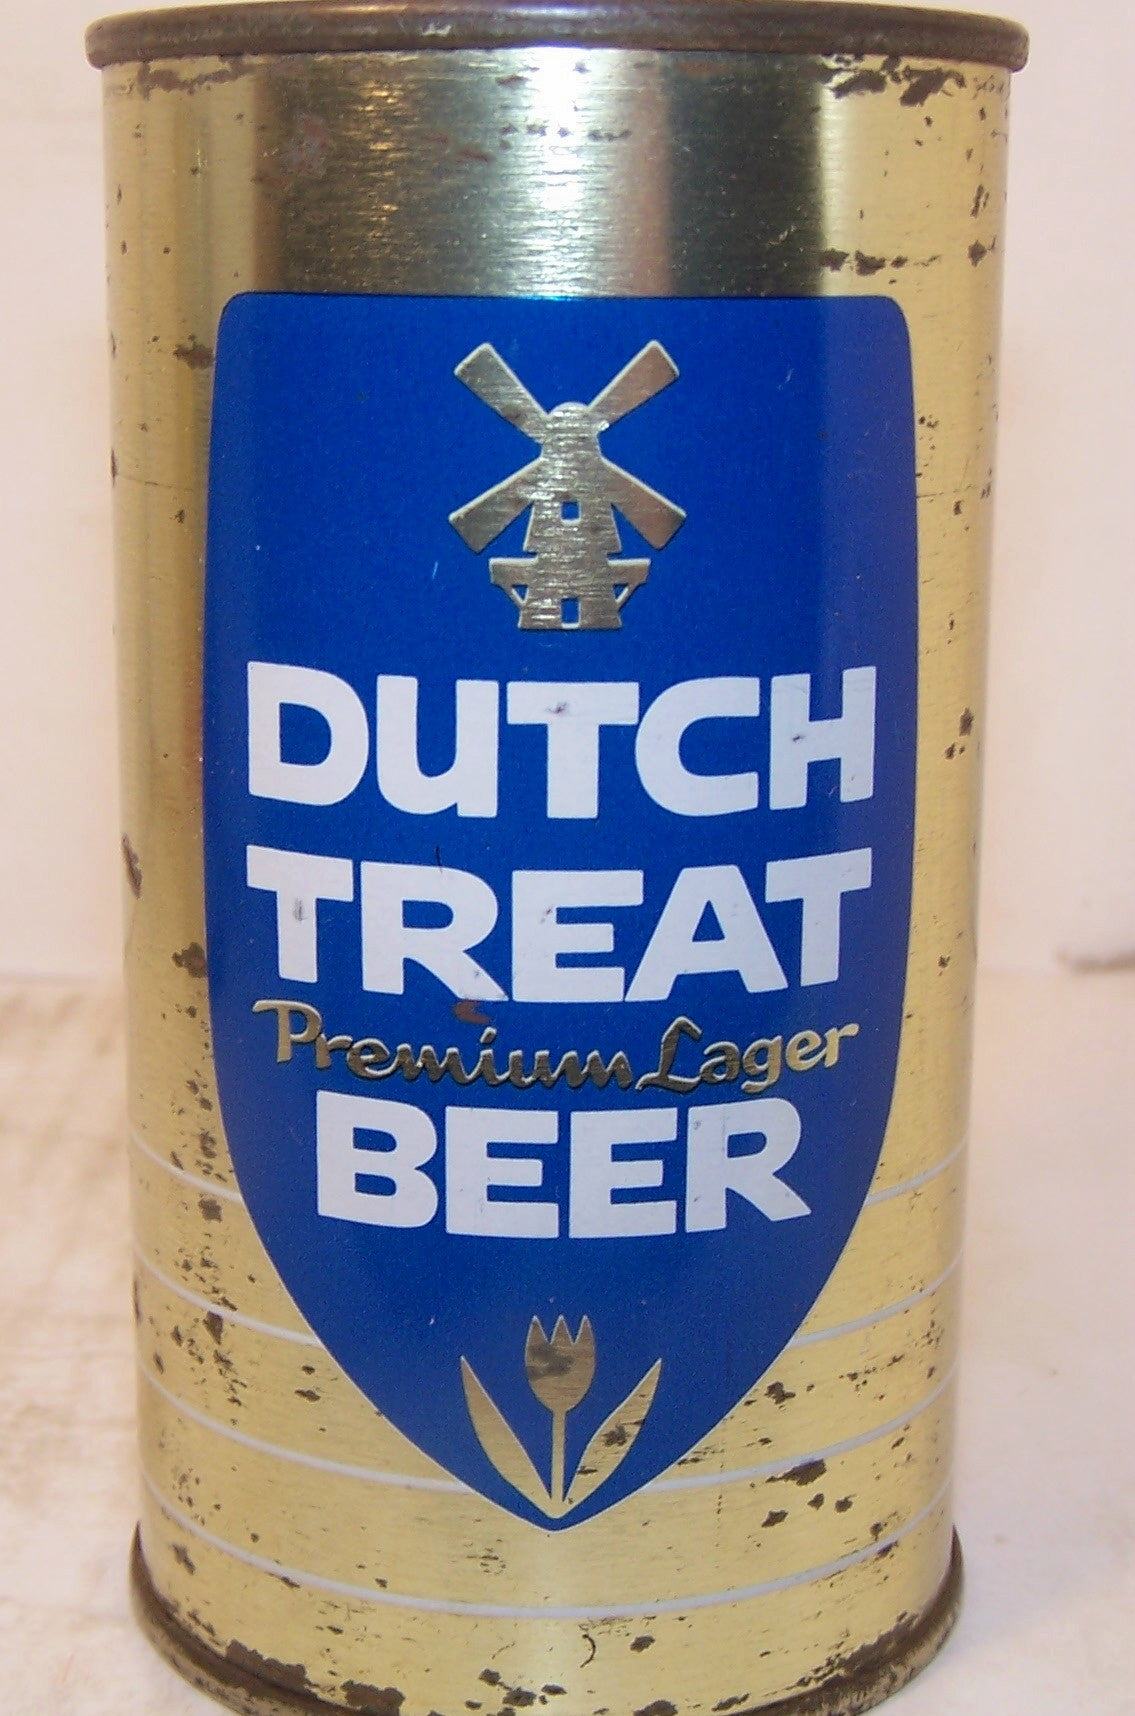 Dutch Treat Premium Lager Beer, USBC 57-35, Grade 1- Sold 12/25/14